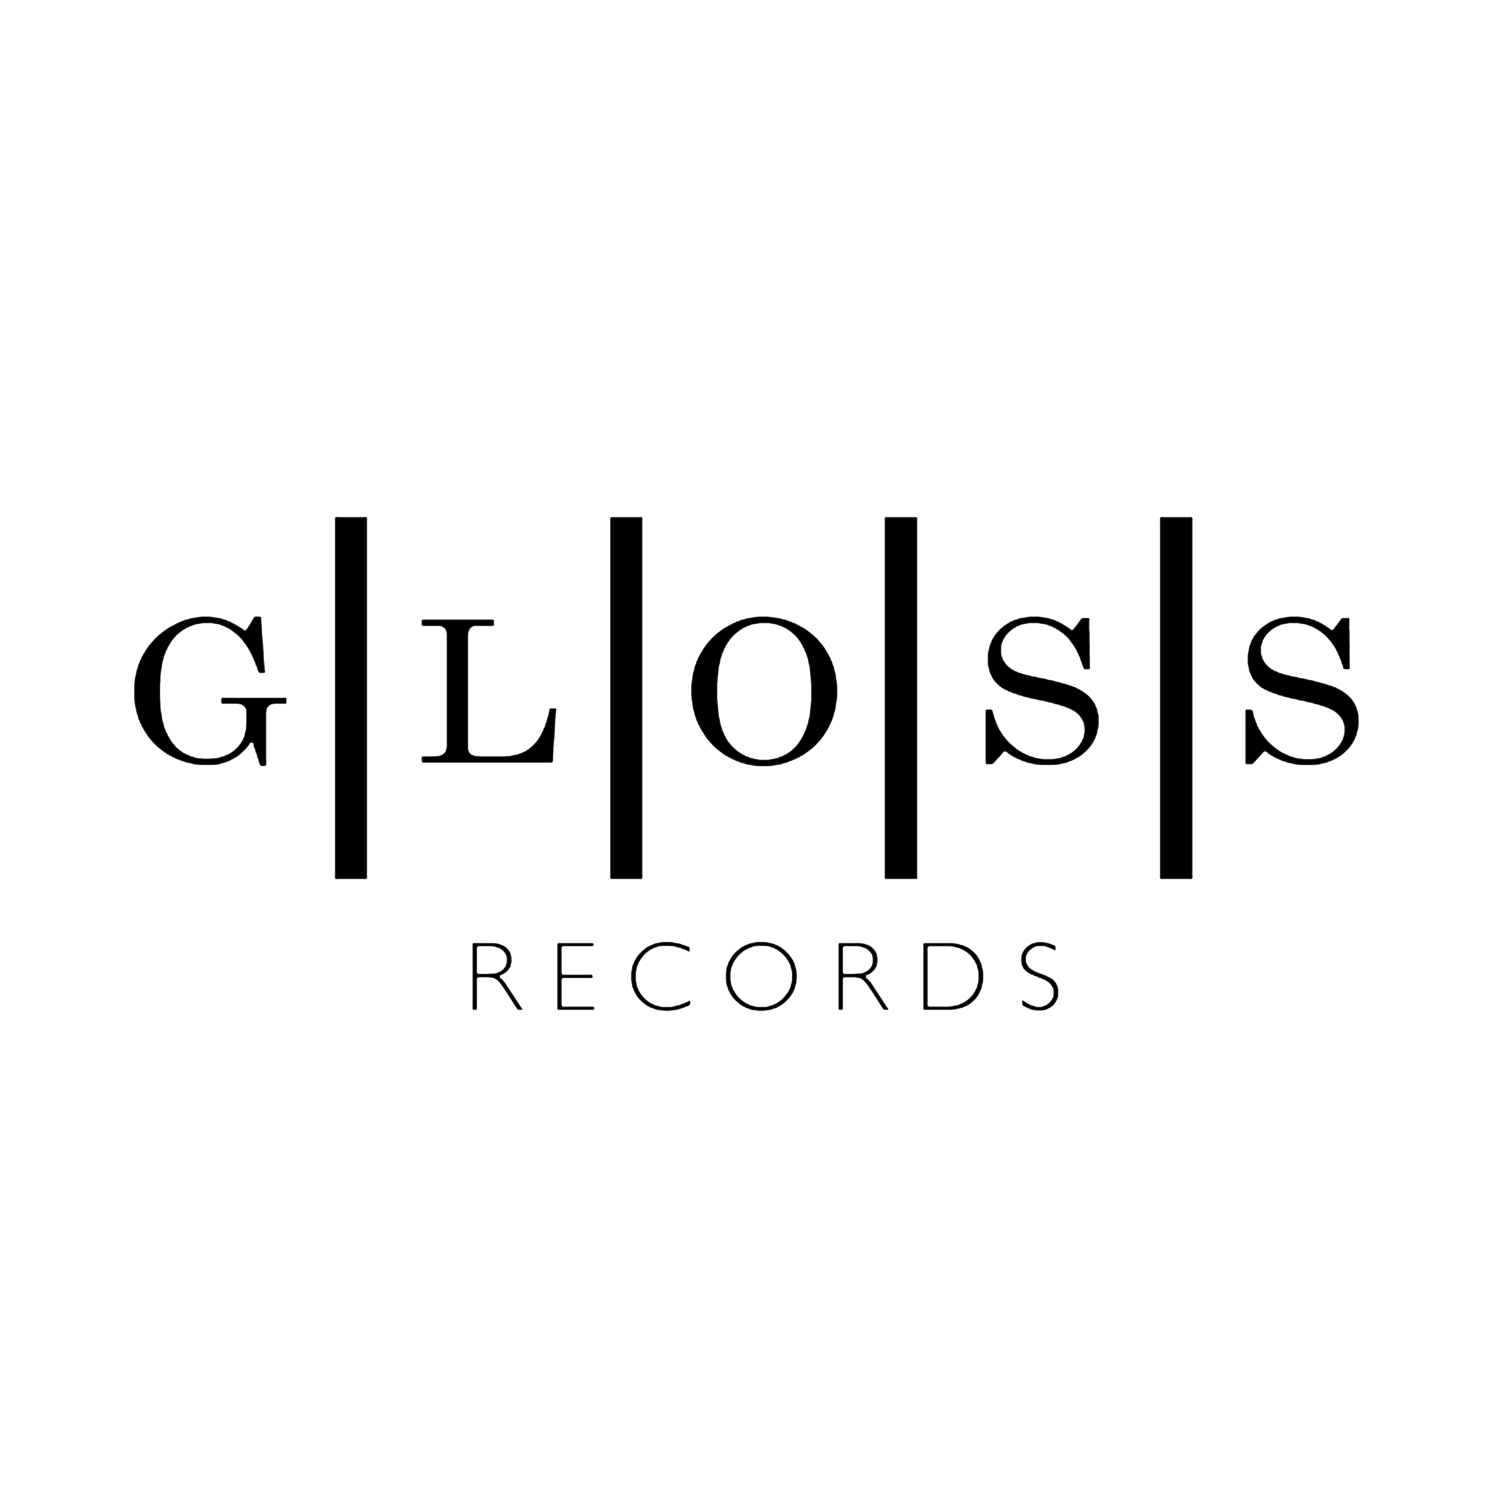 Gloss Records